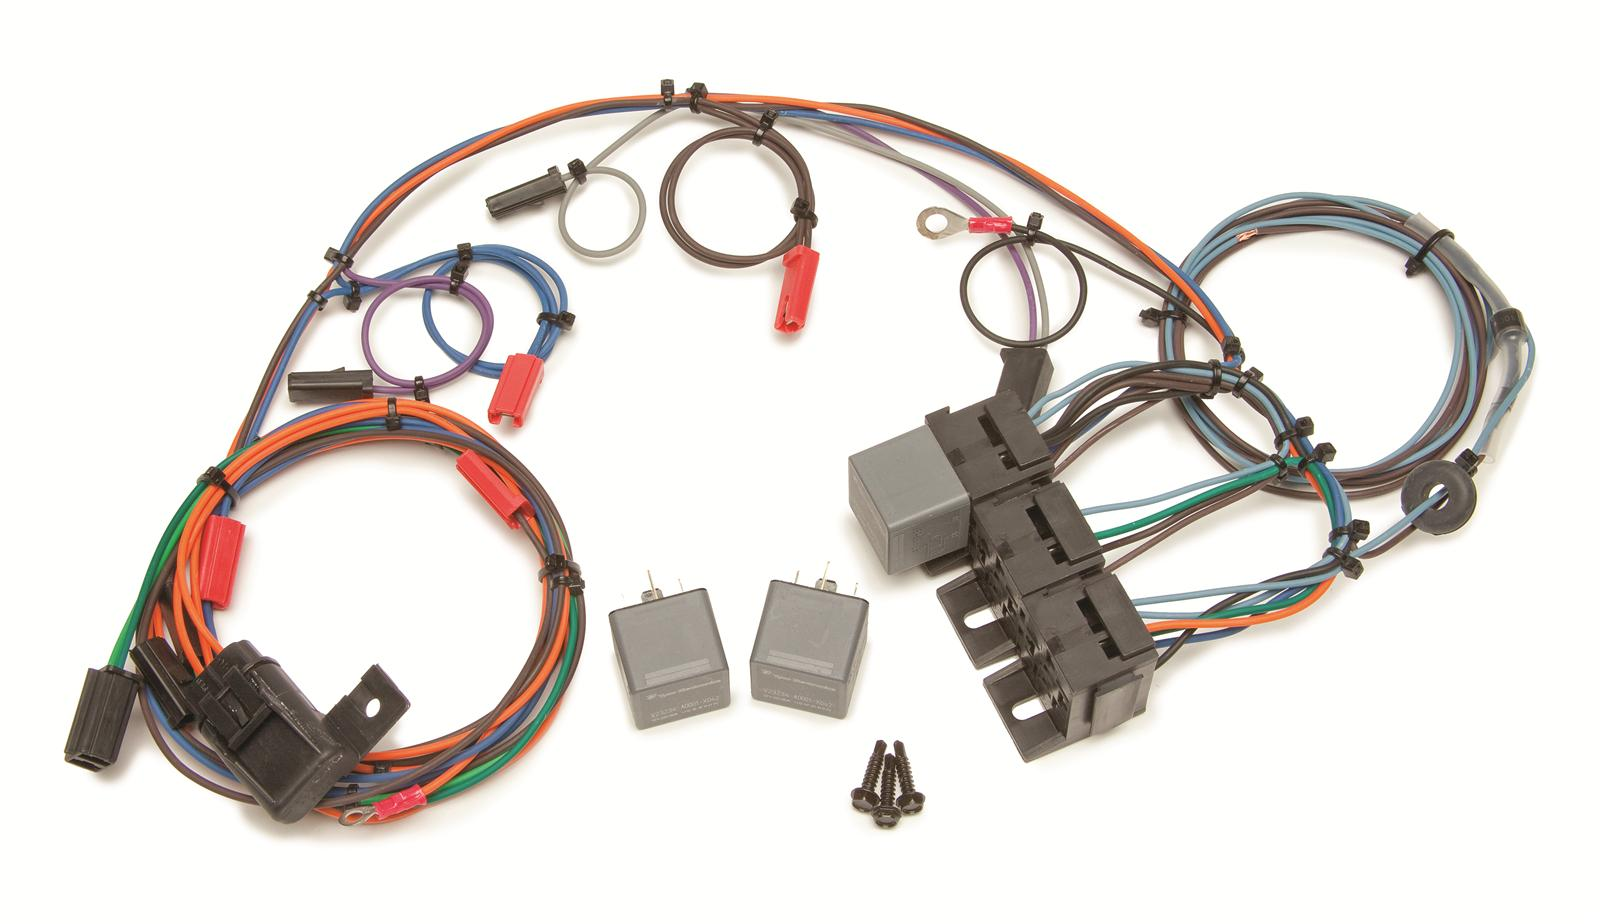 hight resolution of camaro painless performance headlight door wiring harnesses 30818 free shipping on orders over 99 at